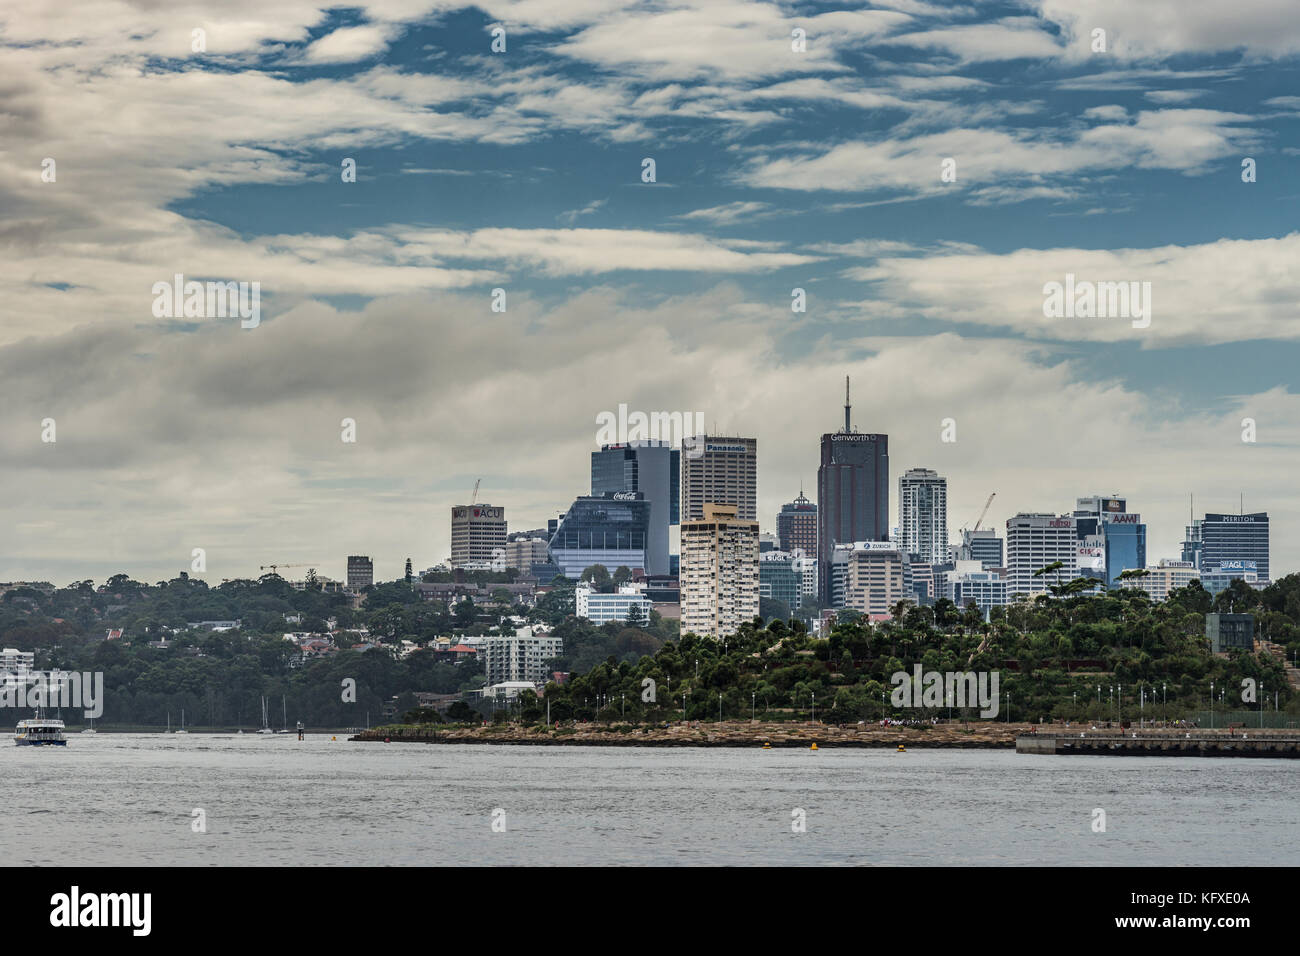 Sydney, Australia - March 21, 2017: Skyline of Kirribilli, northern Sydney business district under blue sky with - Stock Image